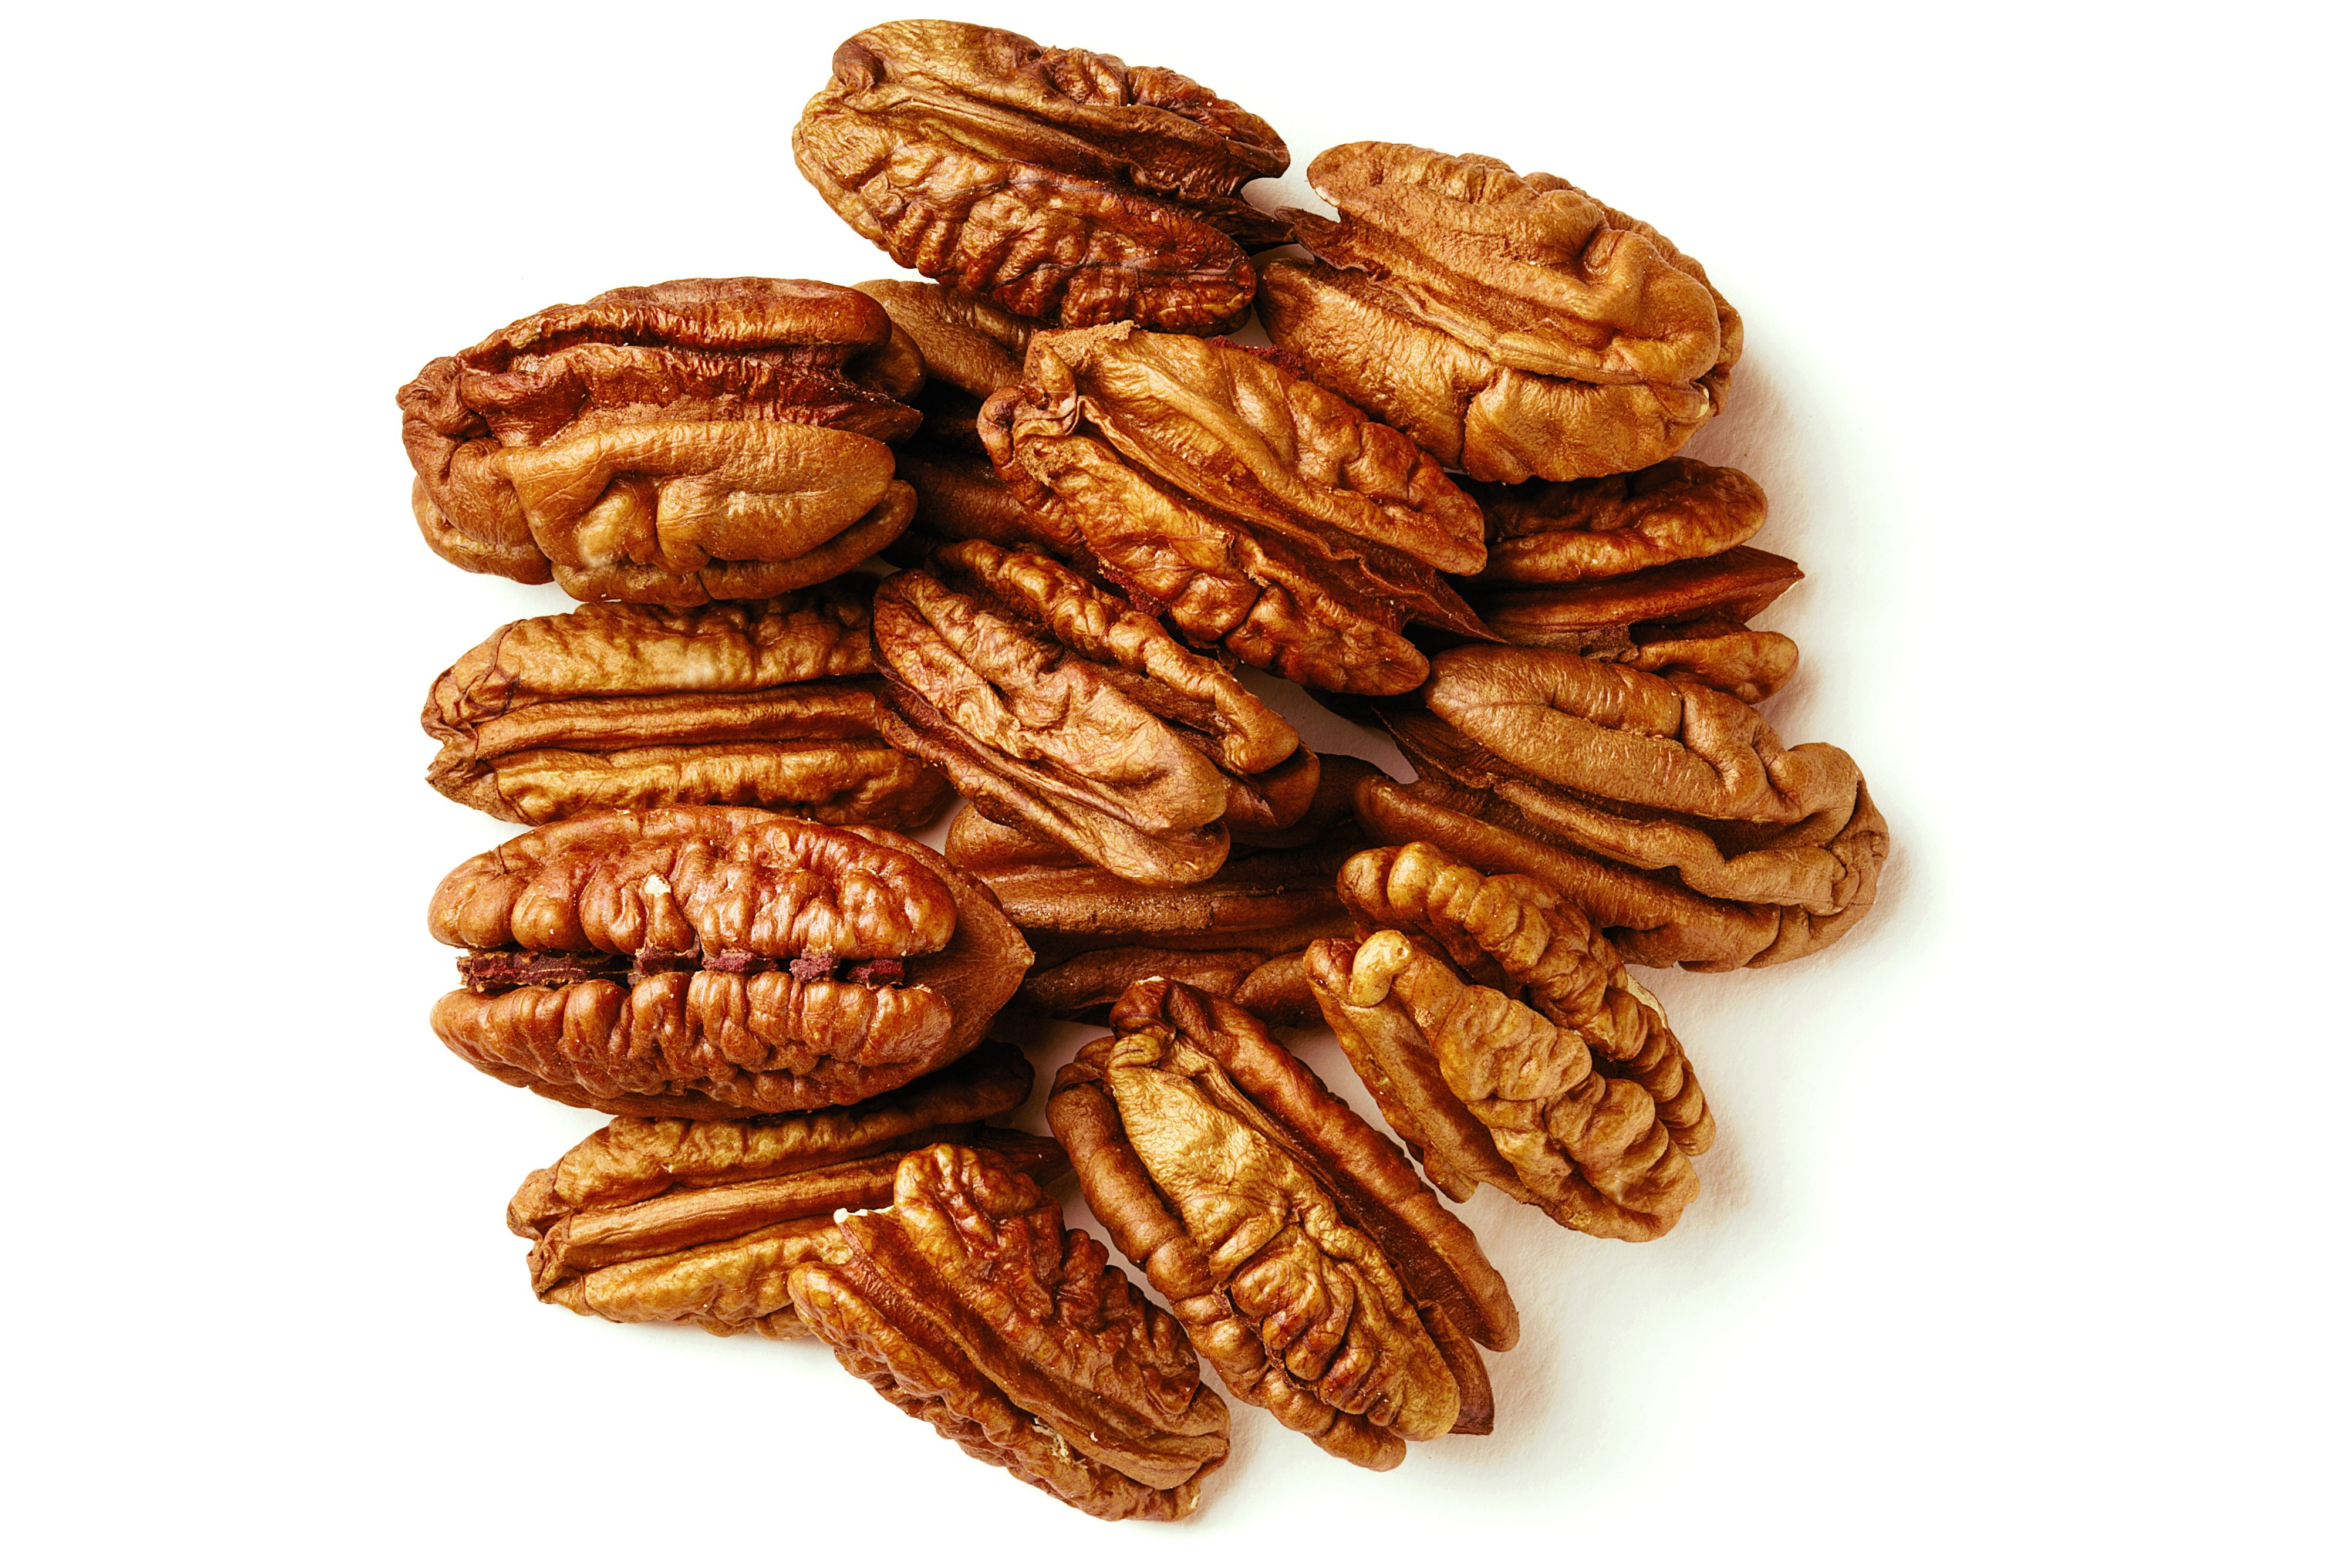 Pecan-Rich Diet May Help Decrease the Risk of Heart Disease and Type 2 Diabetes